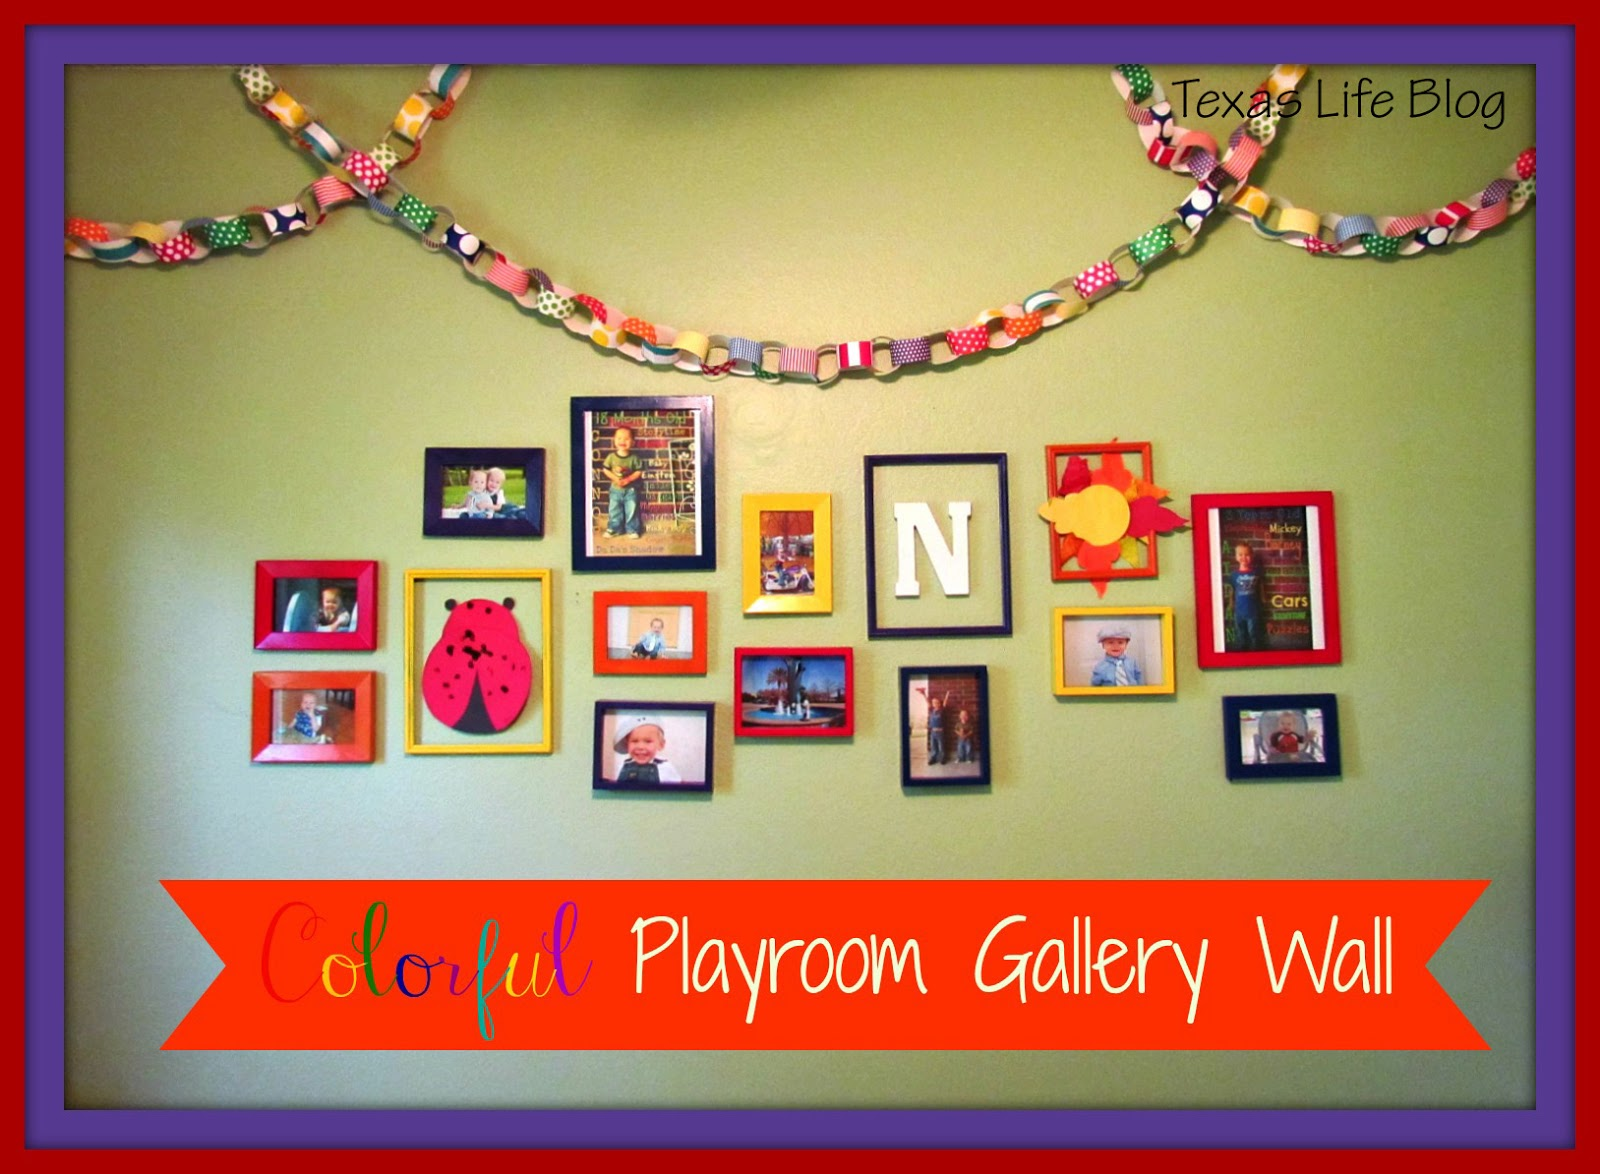 8th Street Bridge: Colorful Playroom Gallery Wall